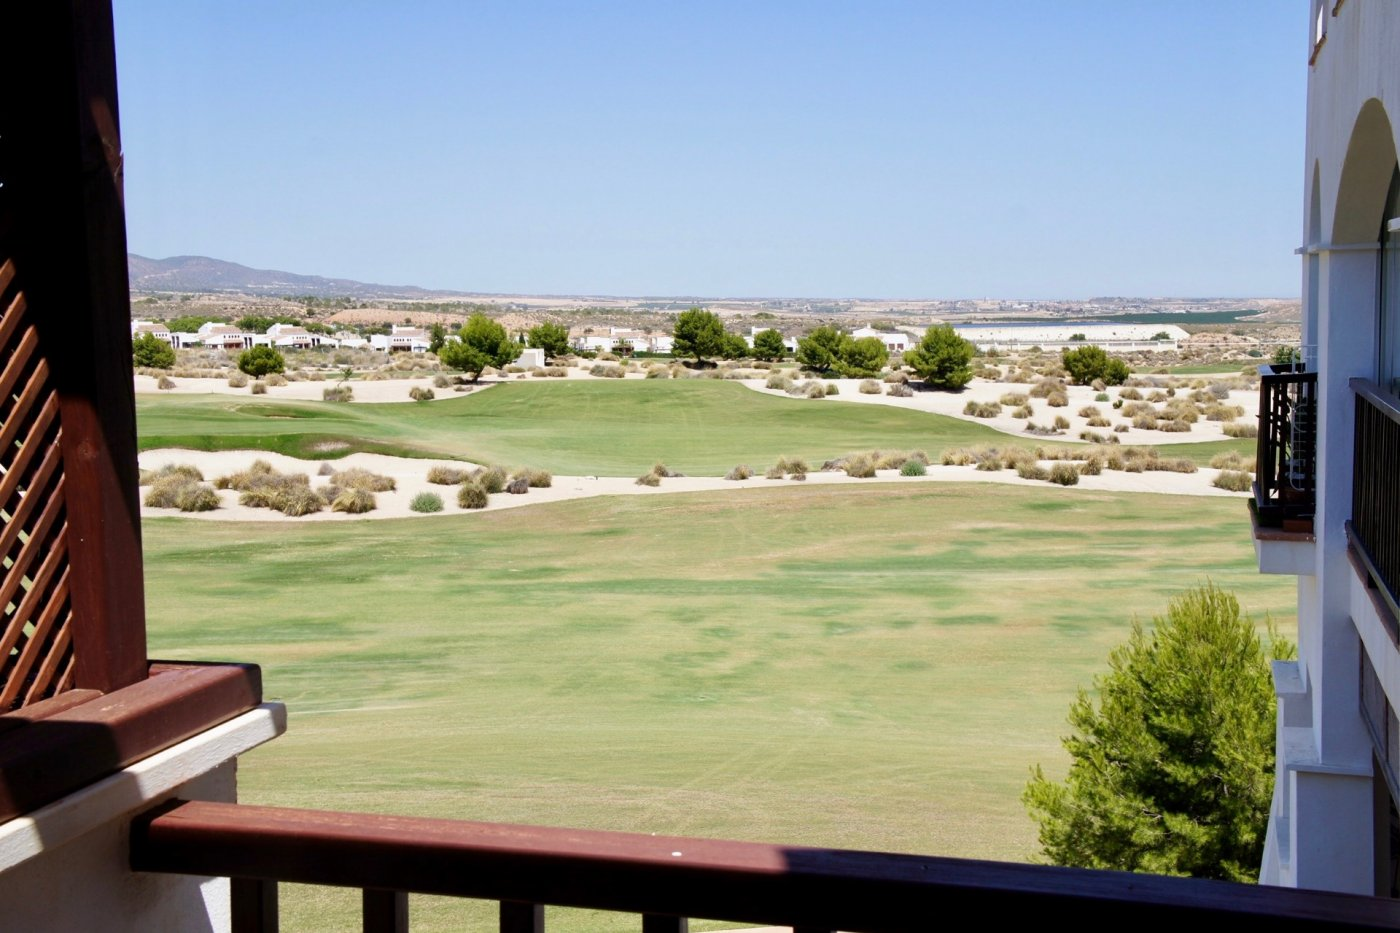 Image 1 Apartment ref 3265-02805 for sale in El Valle Golf Resort Spain - Quality Homes Costa Cálida